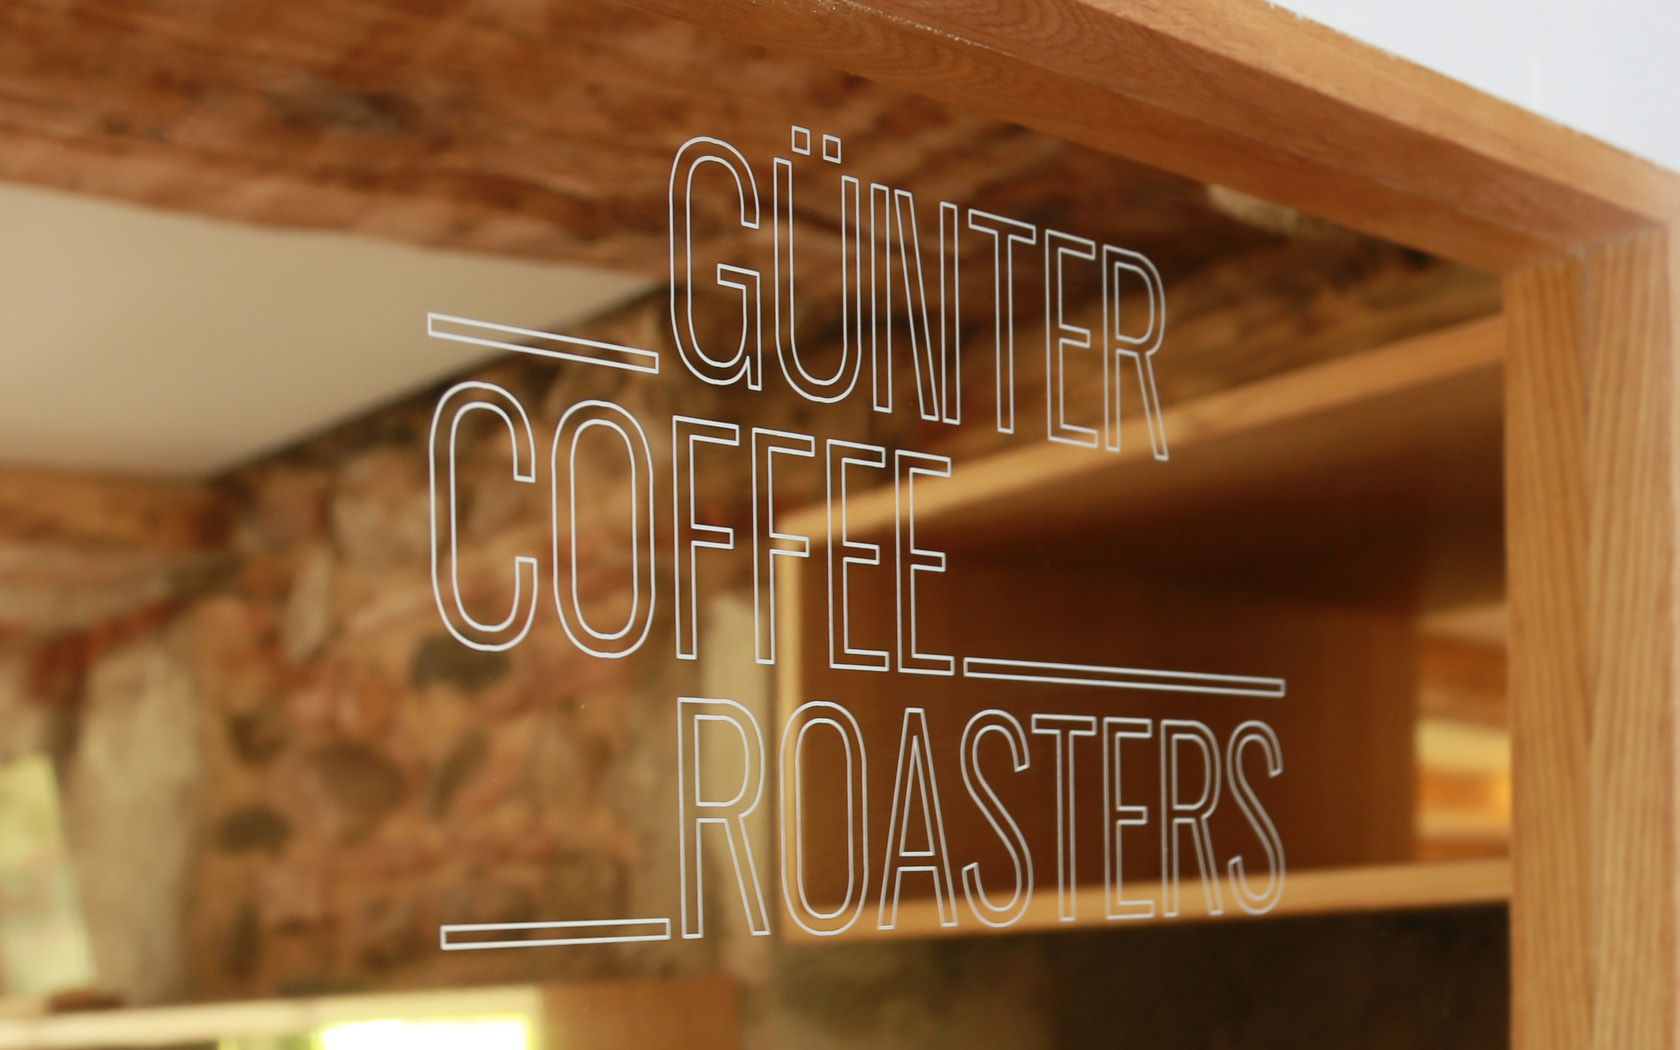 just coffee, günter coffee roaster, kaffee Rösterei Deutschland, Freiburg, Innengestaltung Kaffee Bar, Interiosdesign coffee shop, roaster, hipster coffee, aludibond gold, keinStil.GmbH